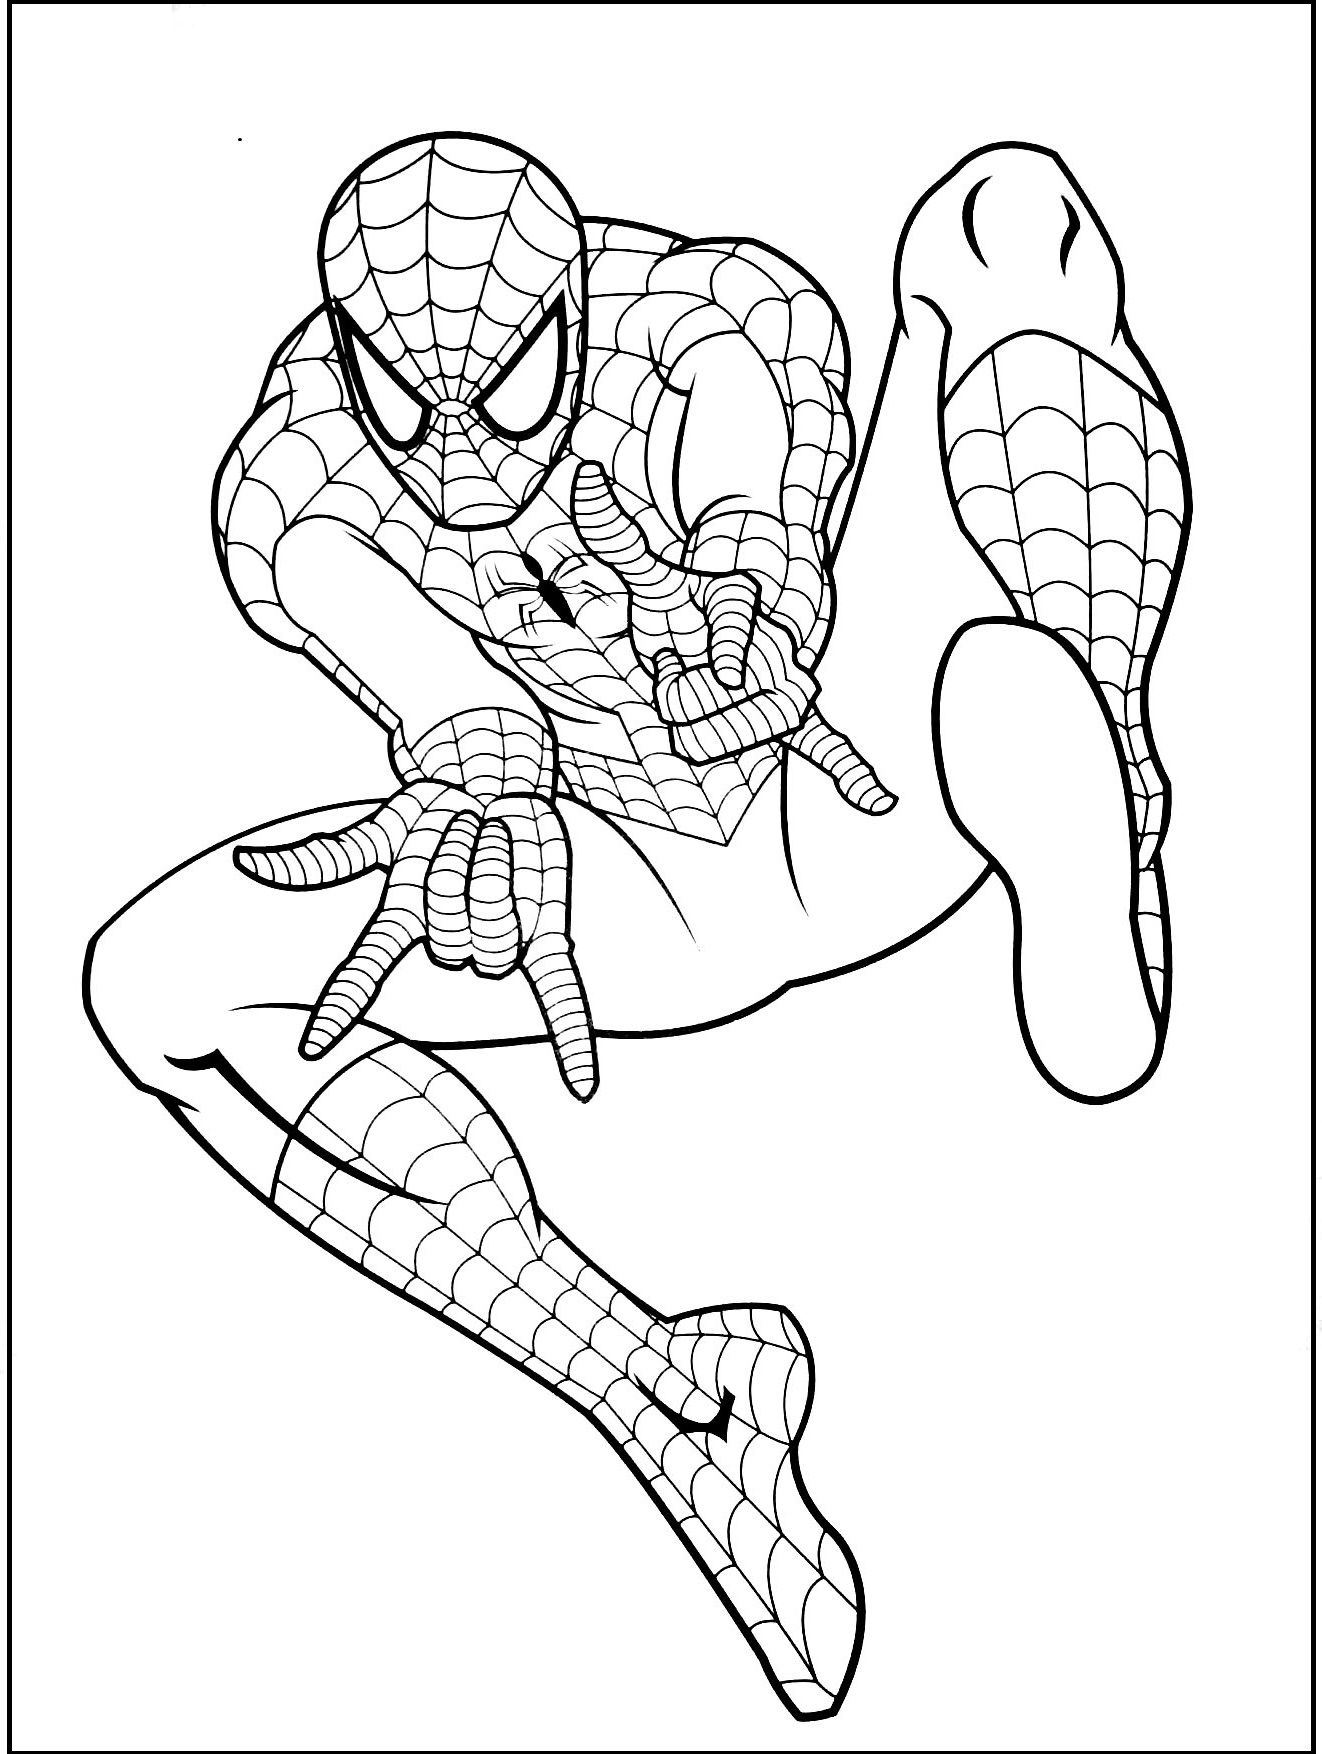 Spiderman Gratuit Coloring Picture For Kids Birthday Party